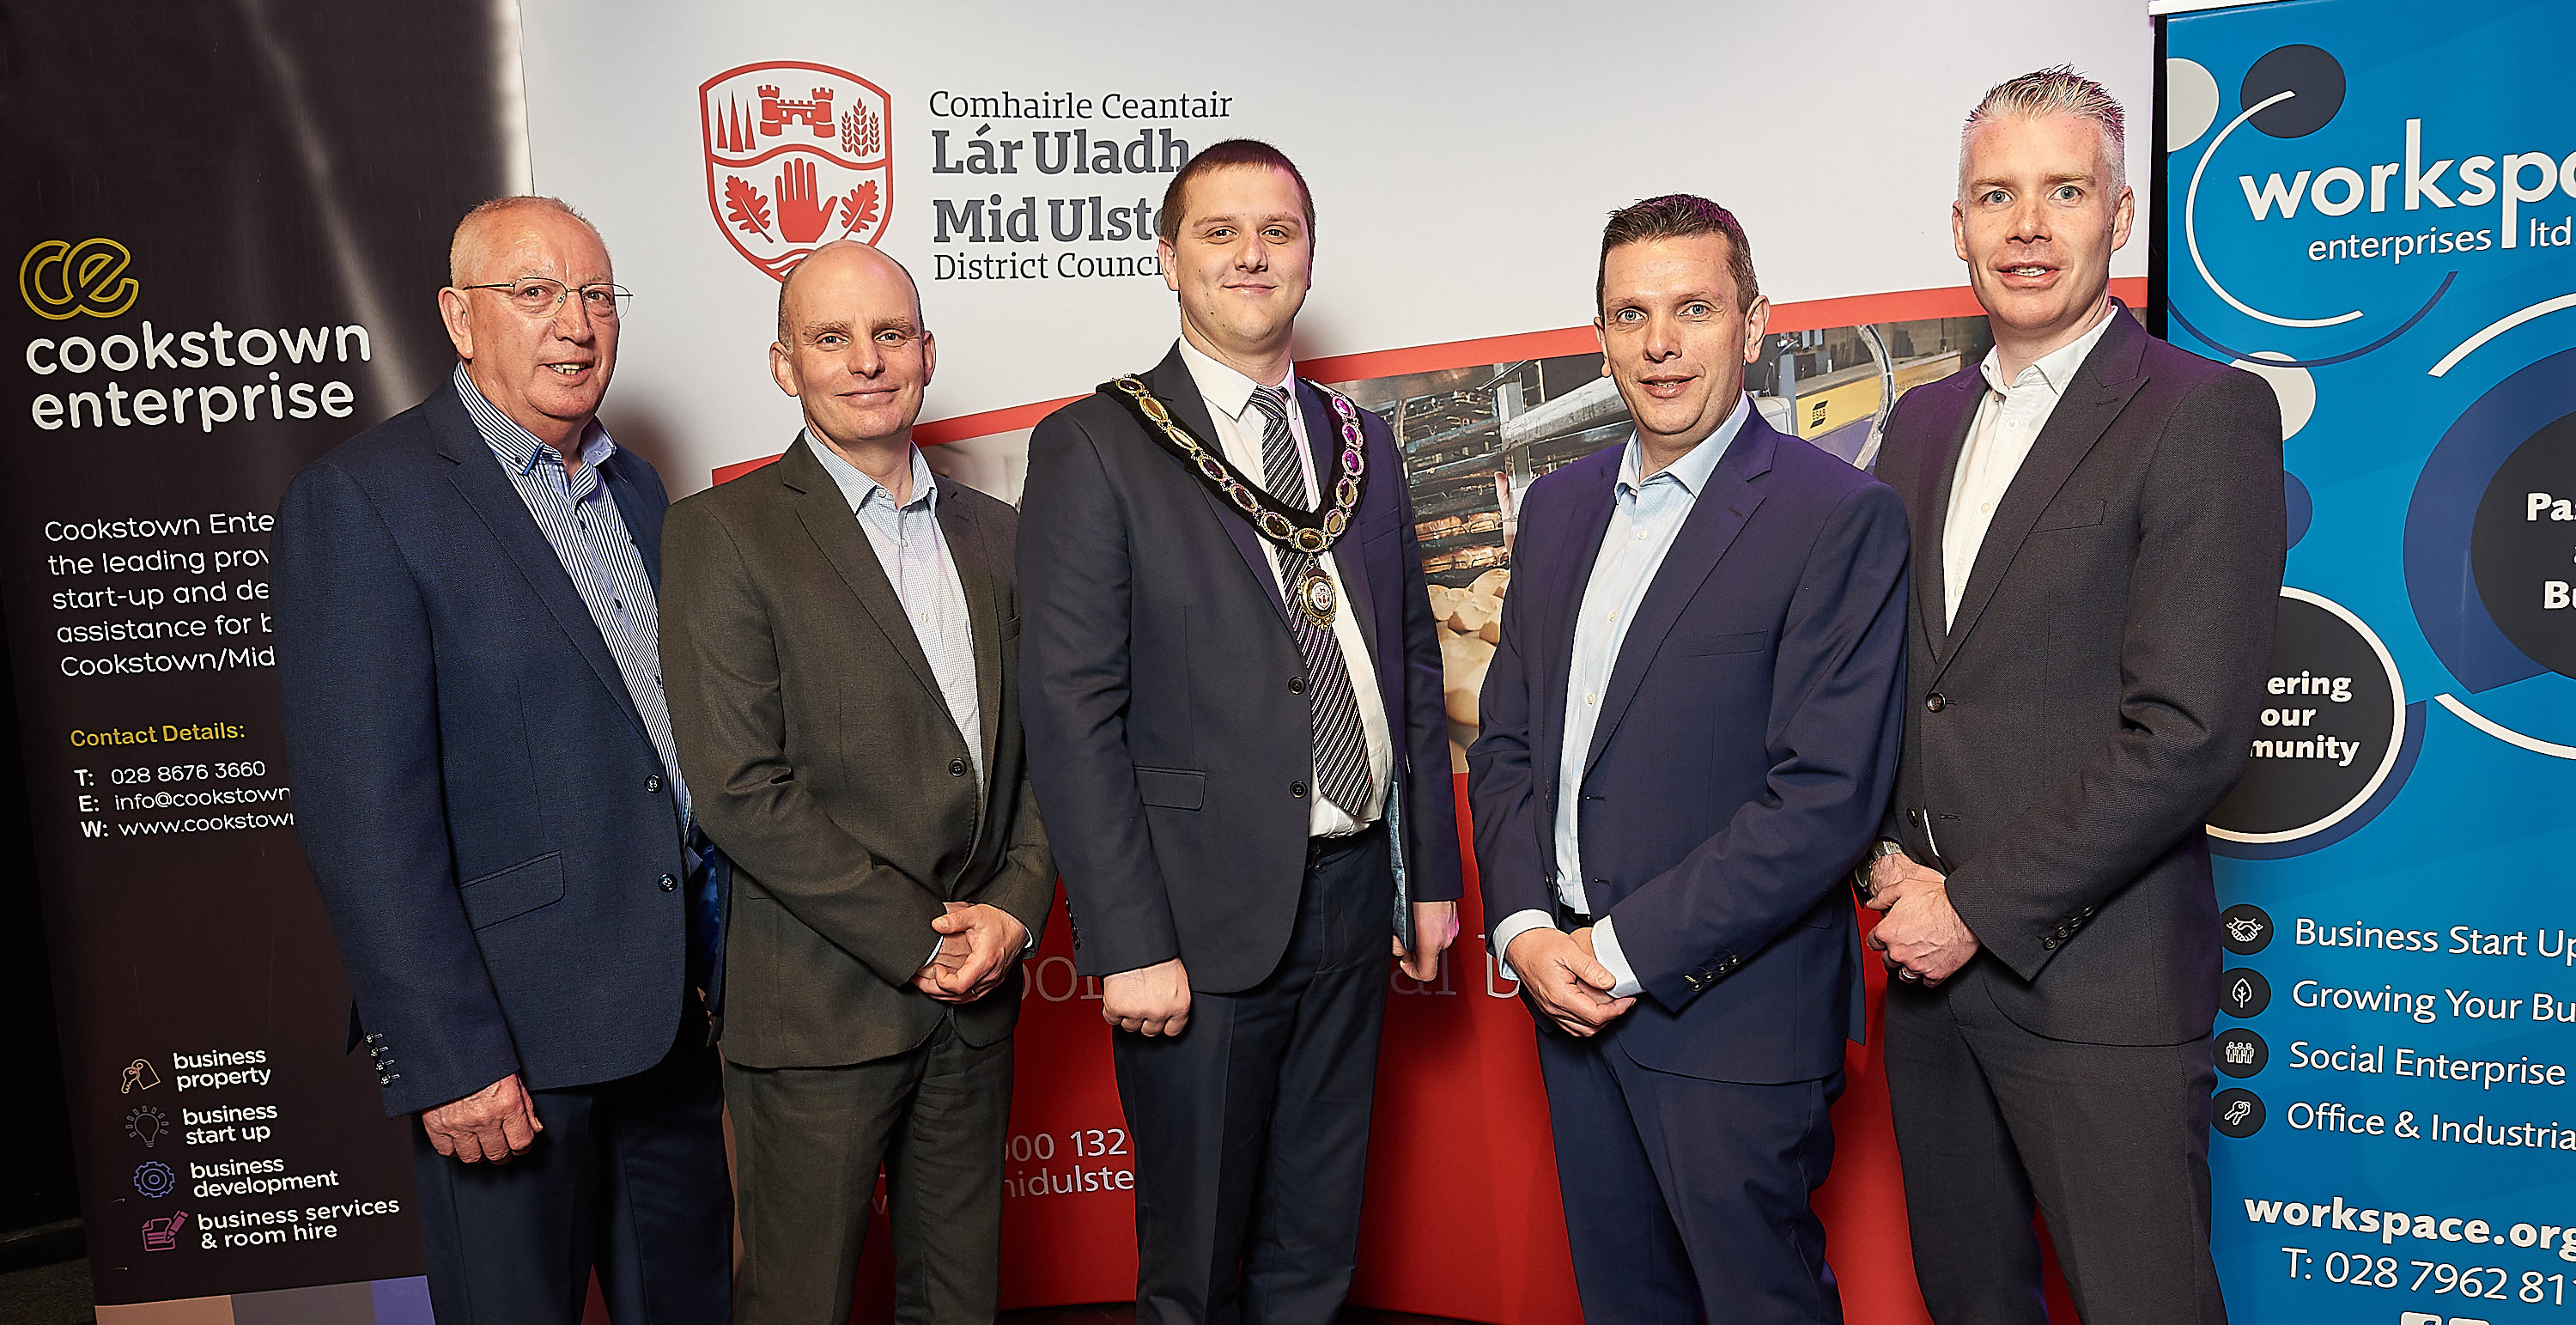 Link to GDPR-Ready Seminar Attracts over 100 Mid Ulster Businesses post